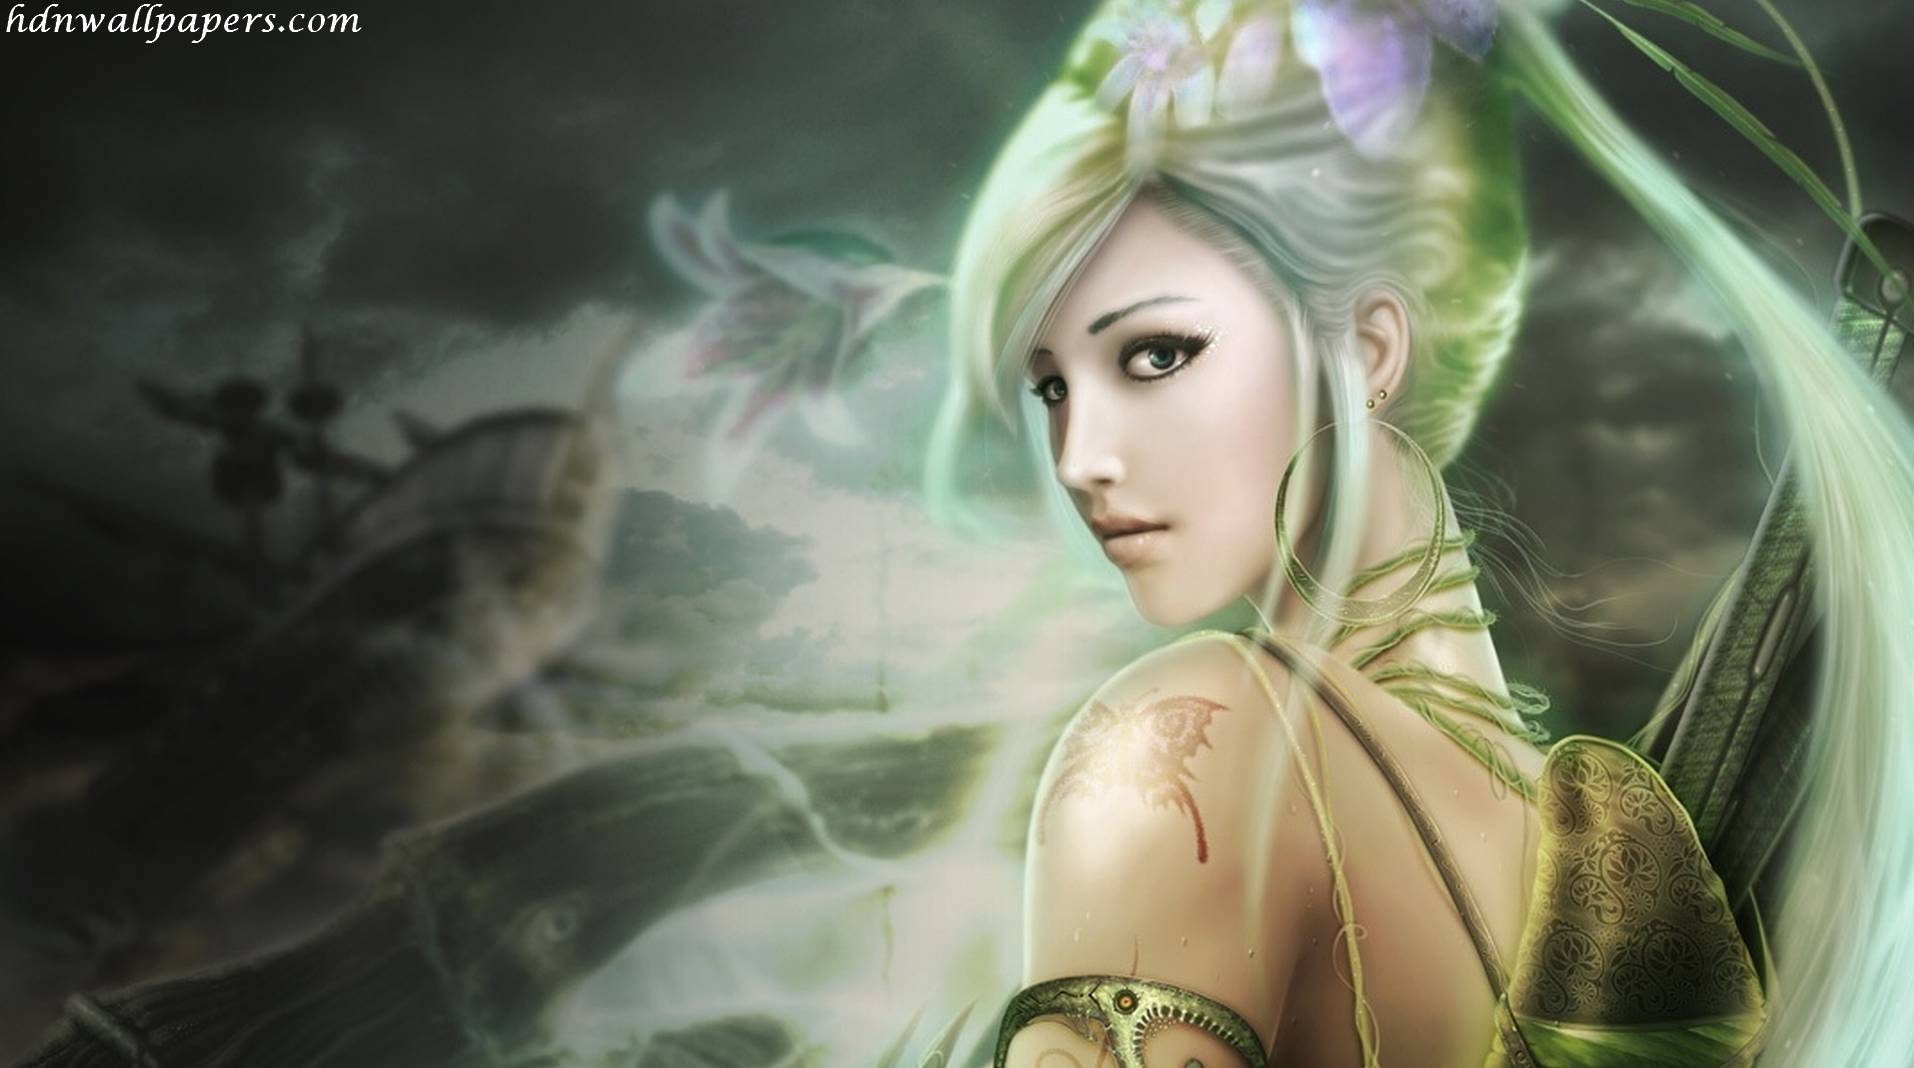 Fairy wallpapers wallpaper cave fairy wallpaper hd 1366x768 hd wallpapers 100 high quality voltagebd Image collections